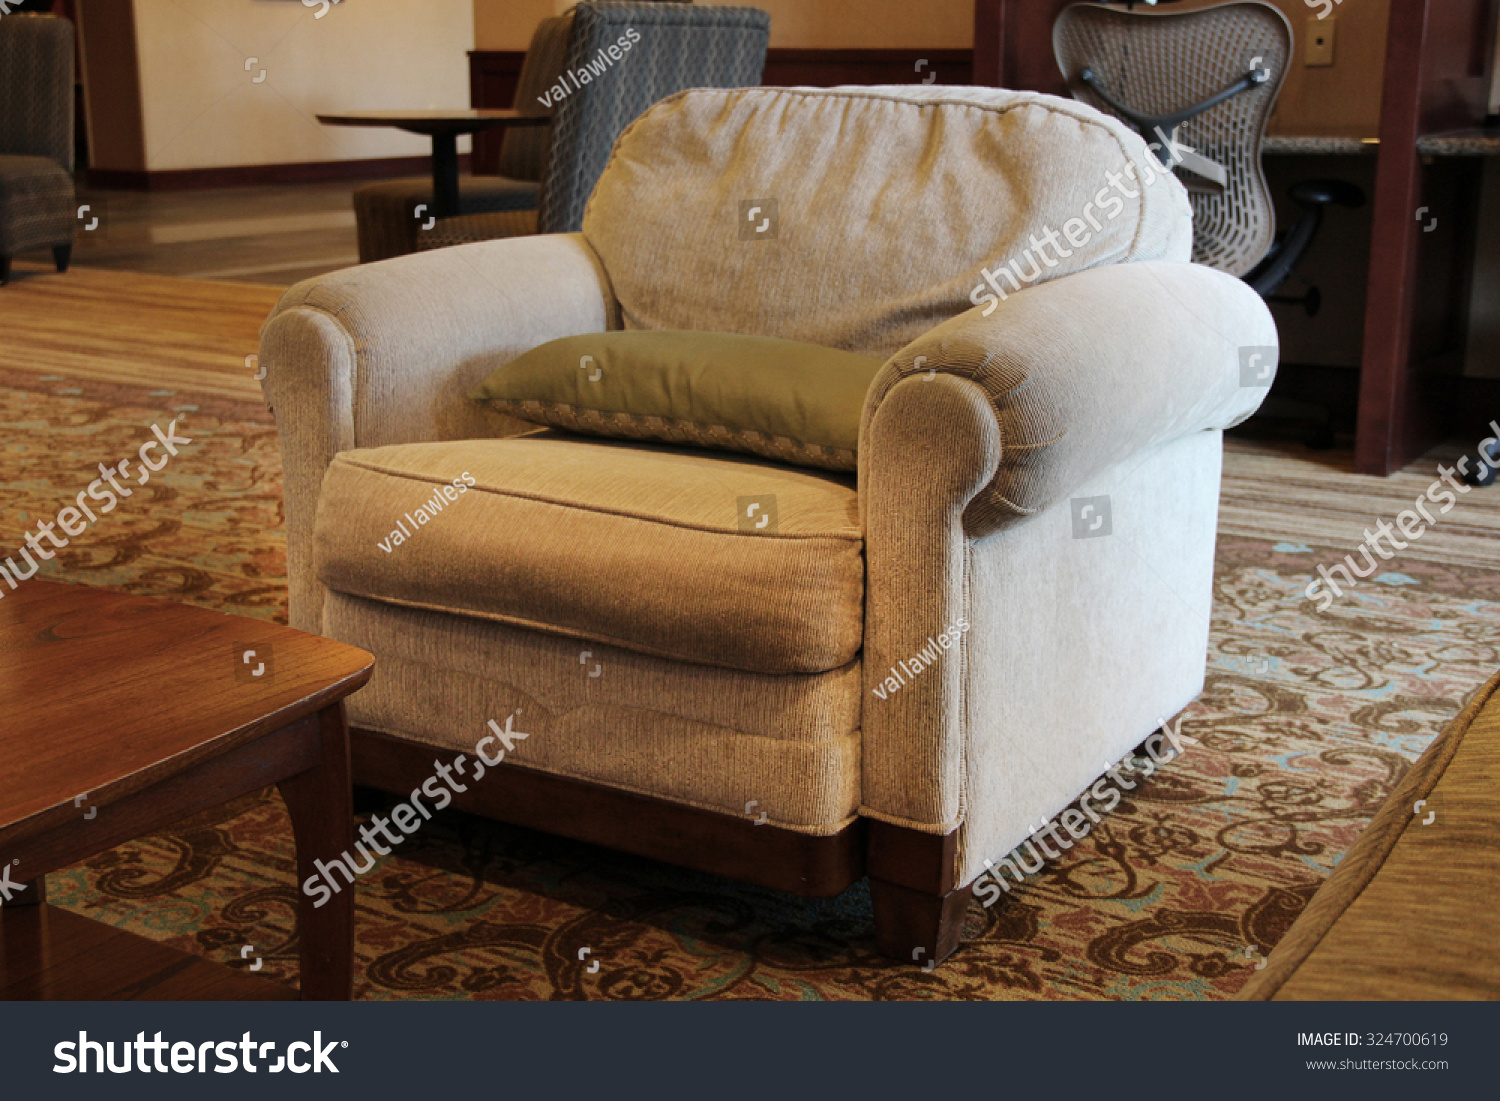 Large overstuffed armchair stock photo 324700619 for Overstuffed armchair